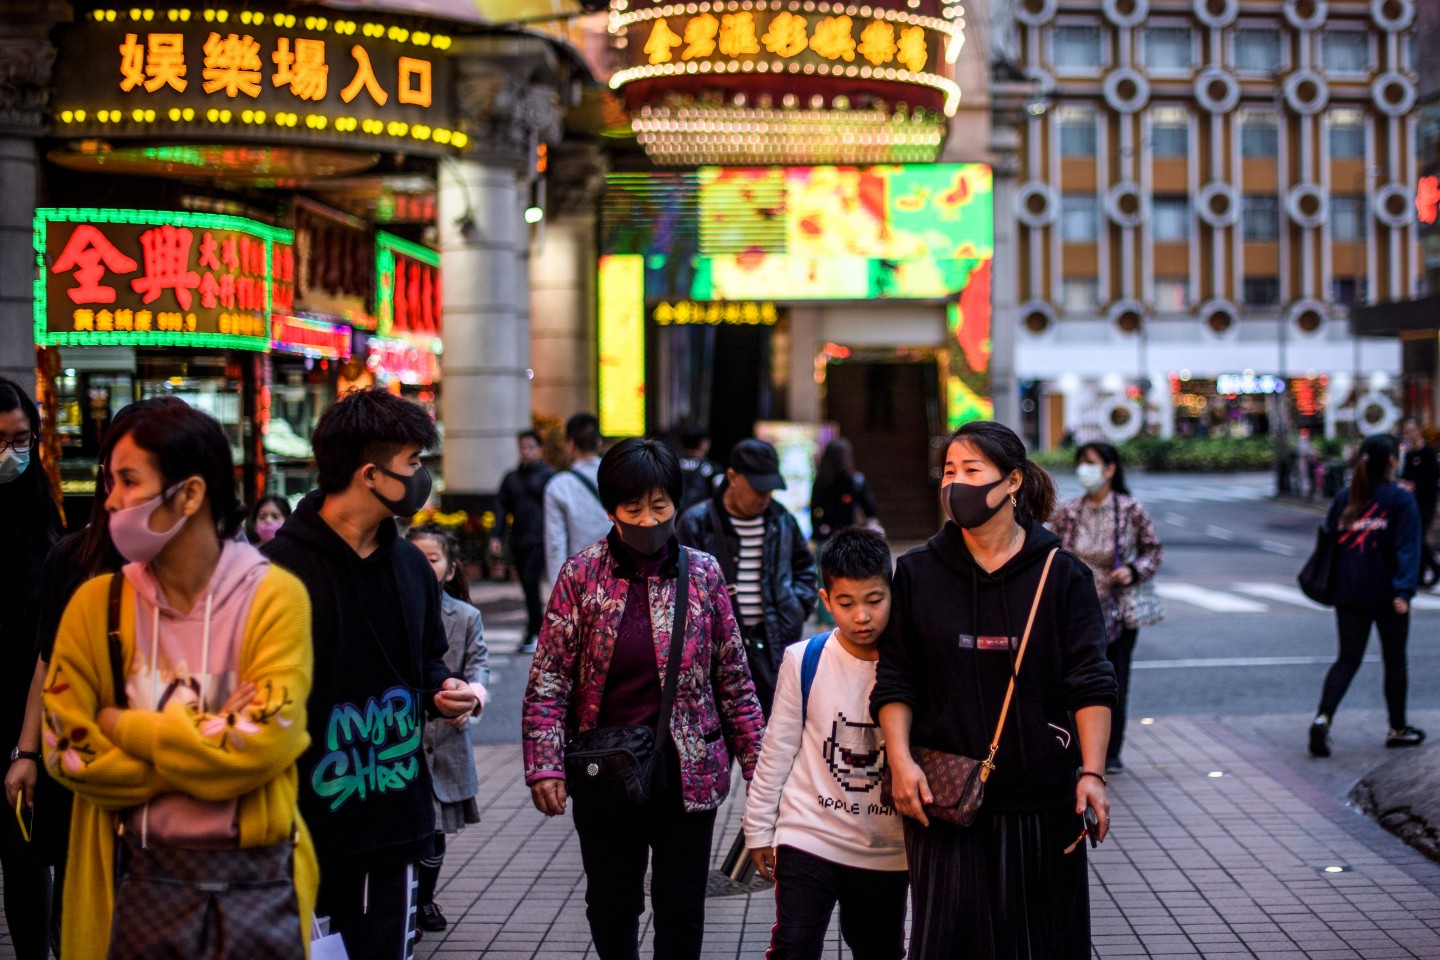 Pedestrians wear face masks as they walk along a pavement in Macao on 22 January 2020, after the former Portuguese colony reported its first case of the new SARS-like virus that originated from Wuhan in China. (Anthony Wallace/AFP)